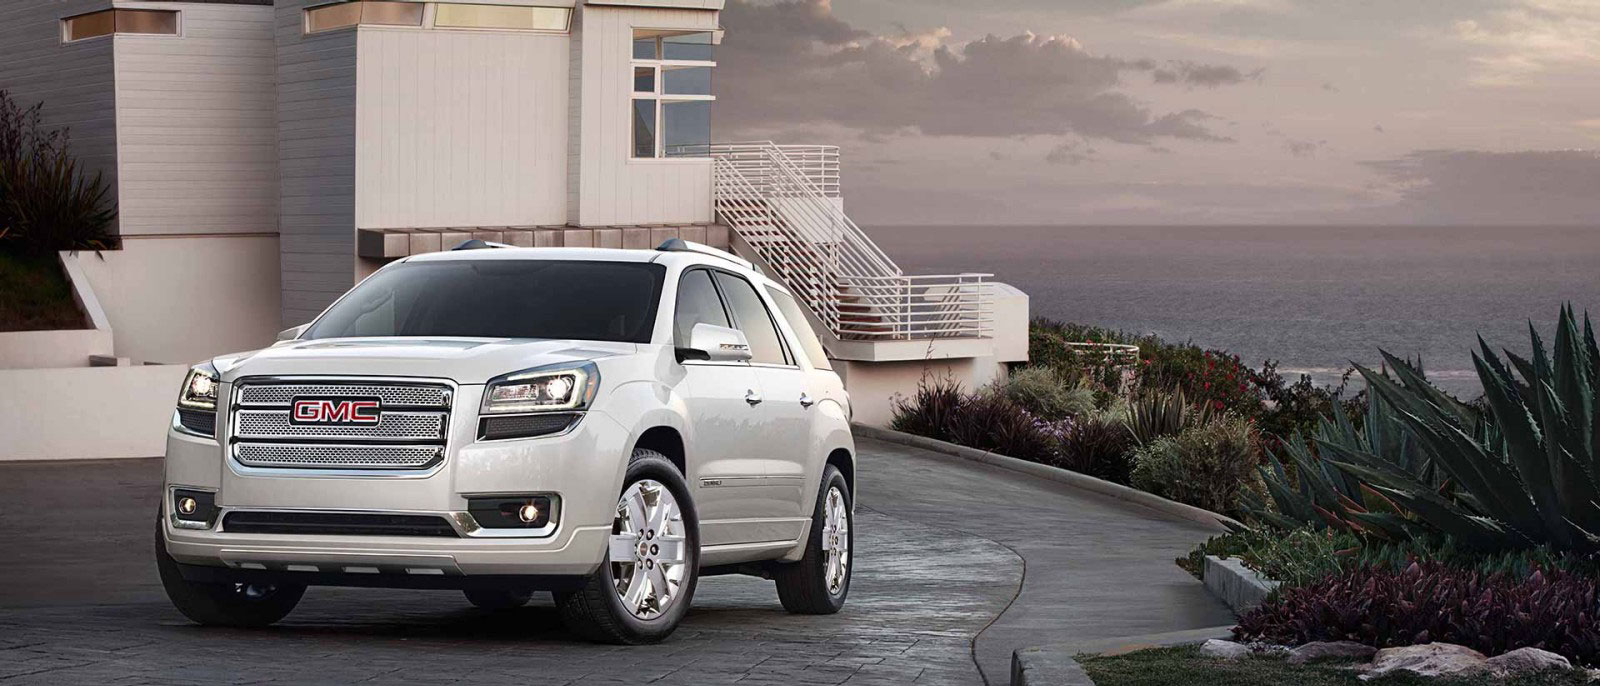 2016 gmc acadia orland park naperville rizza buick cadillac gmc. Black Bedroom Furniture Sets. Home Design Ideas